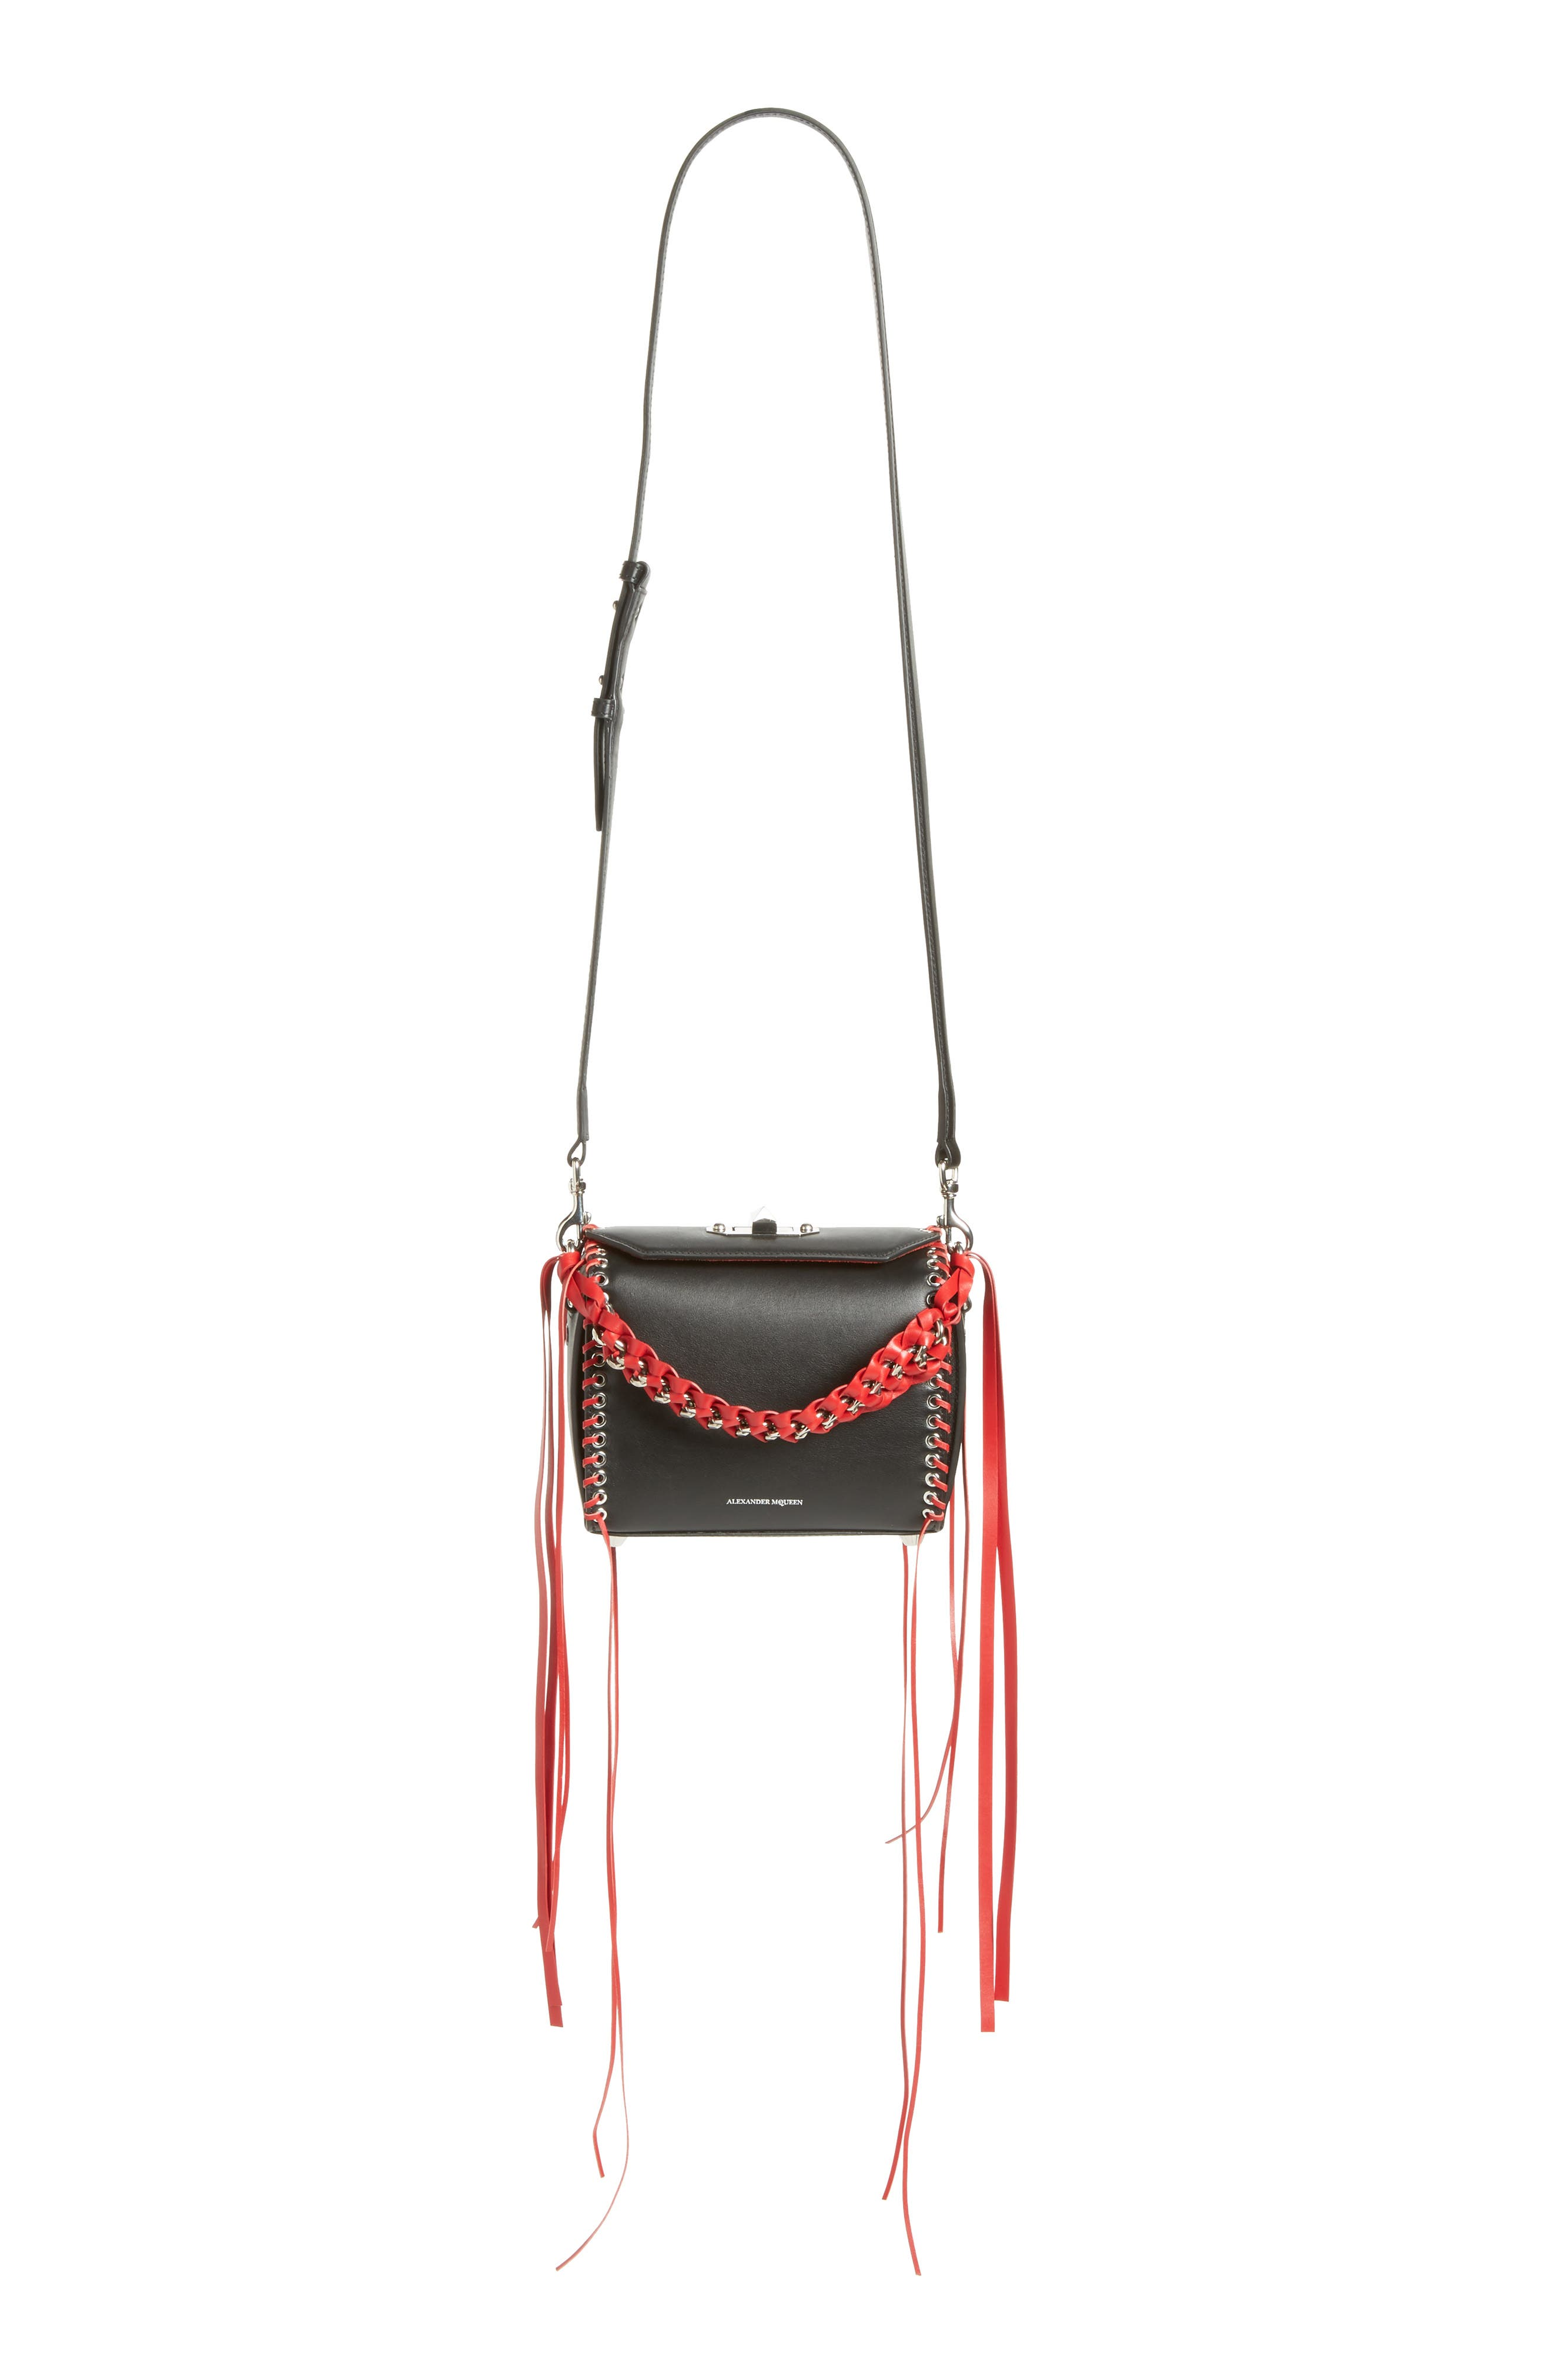 Box Bag 19 Calfskin Bag,                         Main,                         color, Black/ Red